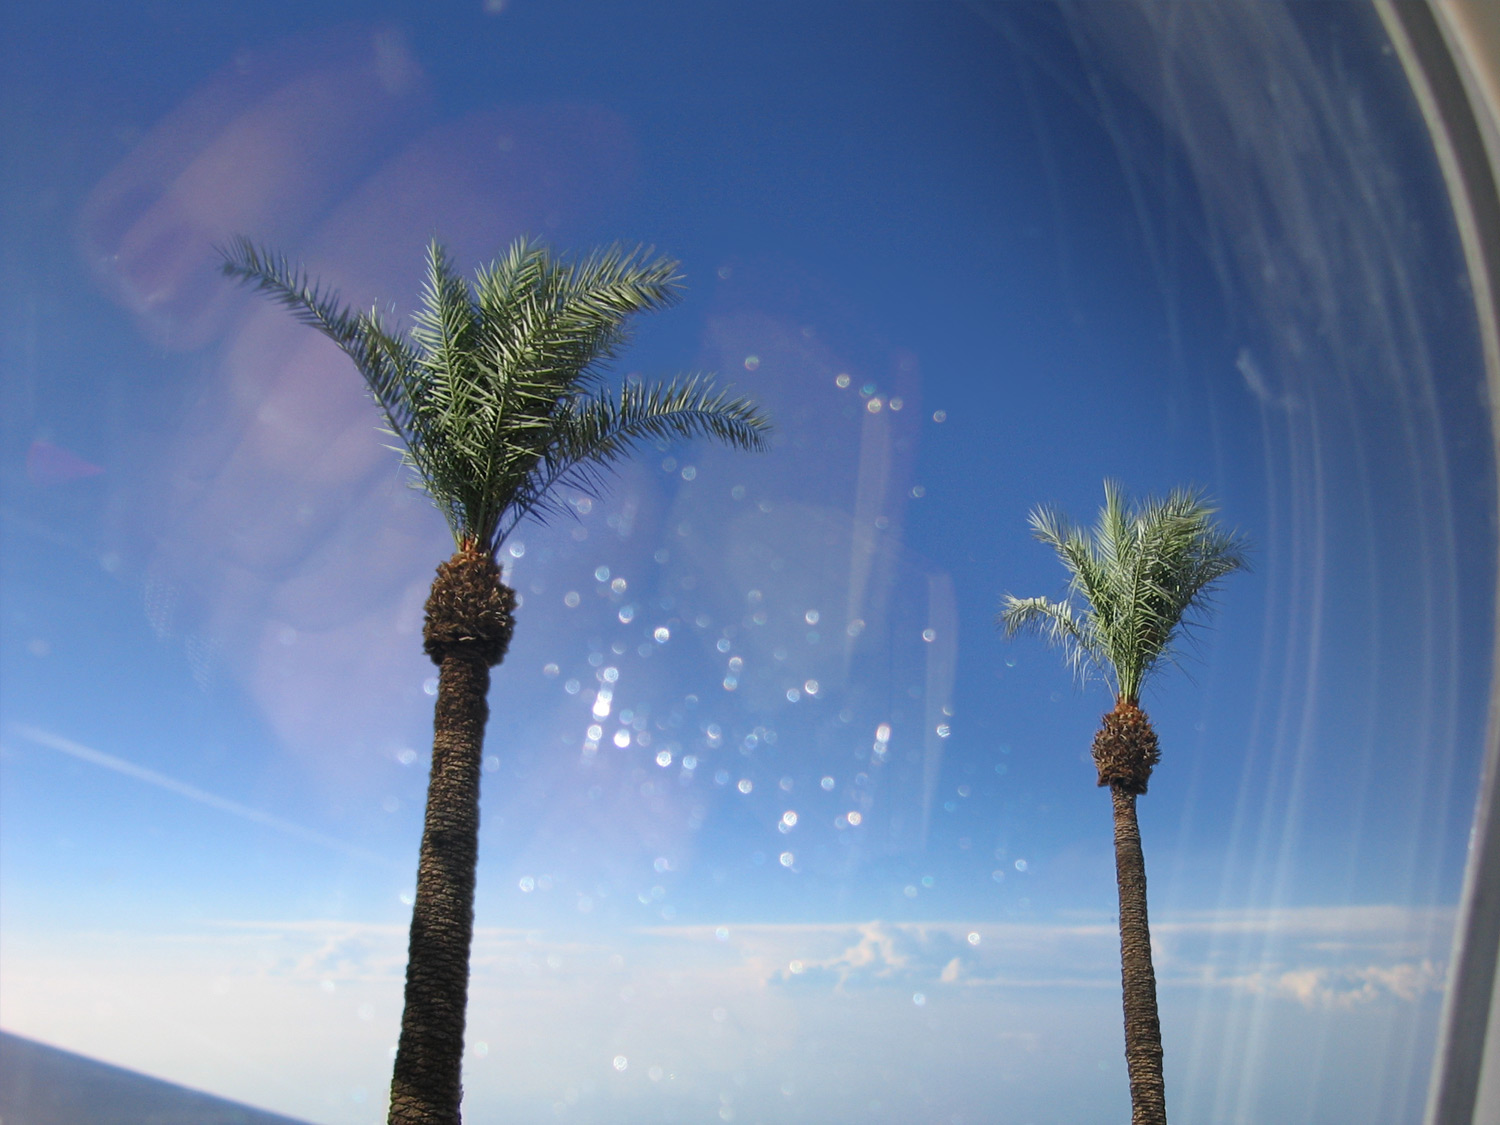 If You Have Only One Week in L.A. | Splash images composite by Sarah Malone